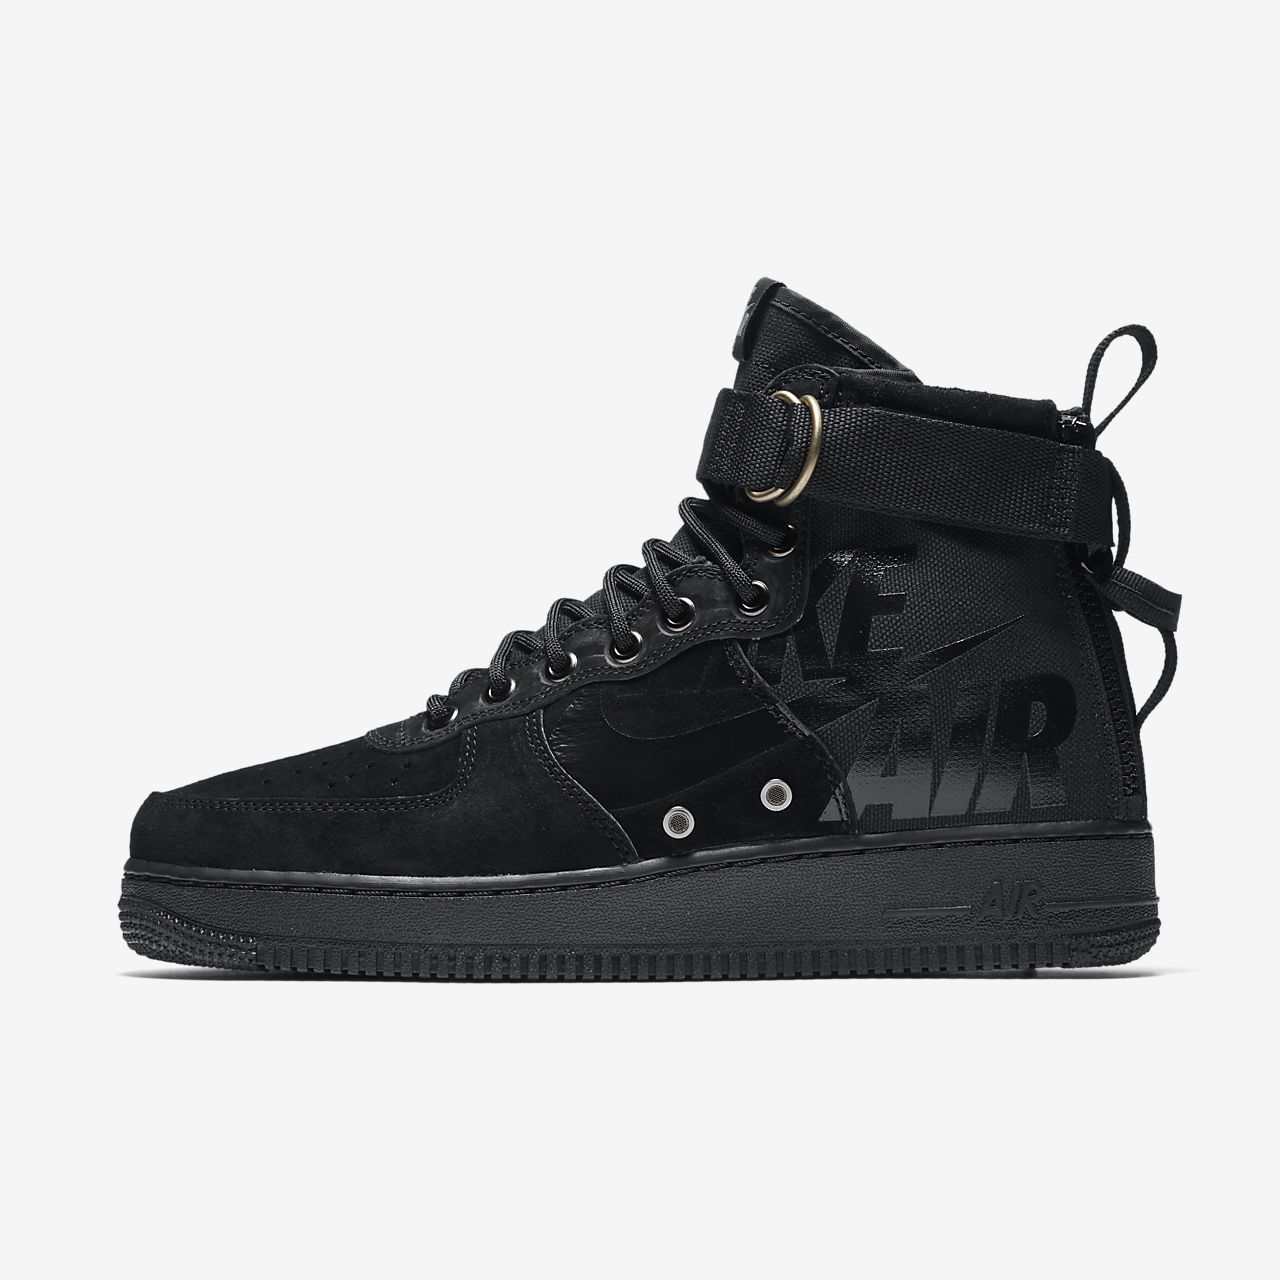 3ecb4209b4962 Nike SF Air Force 1 Mid Men s Shoe. Nike.com PT